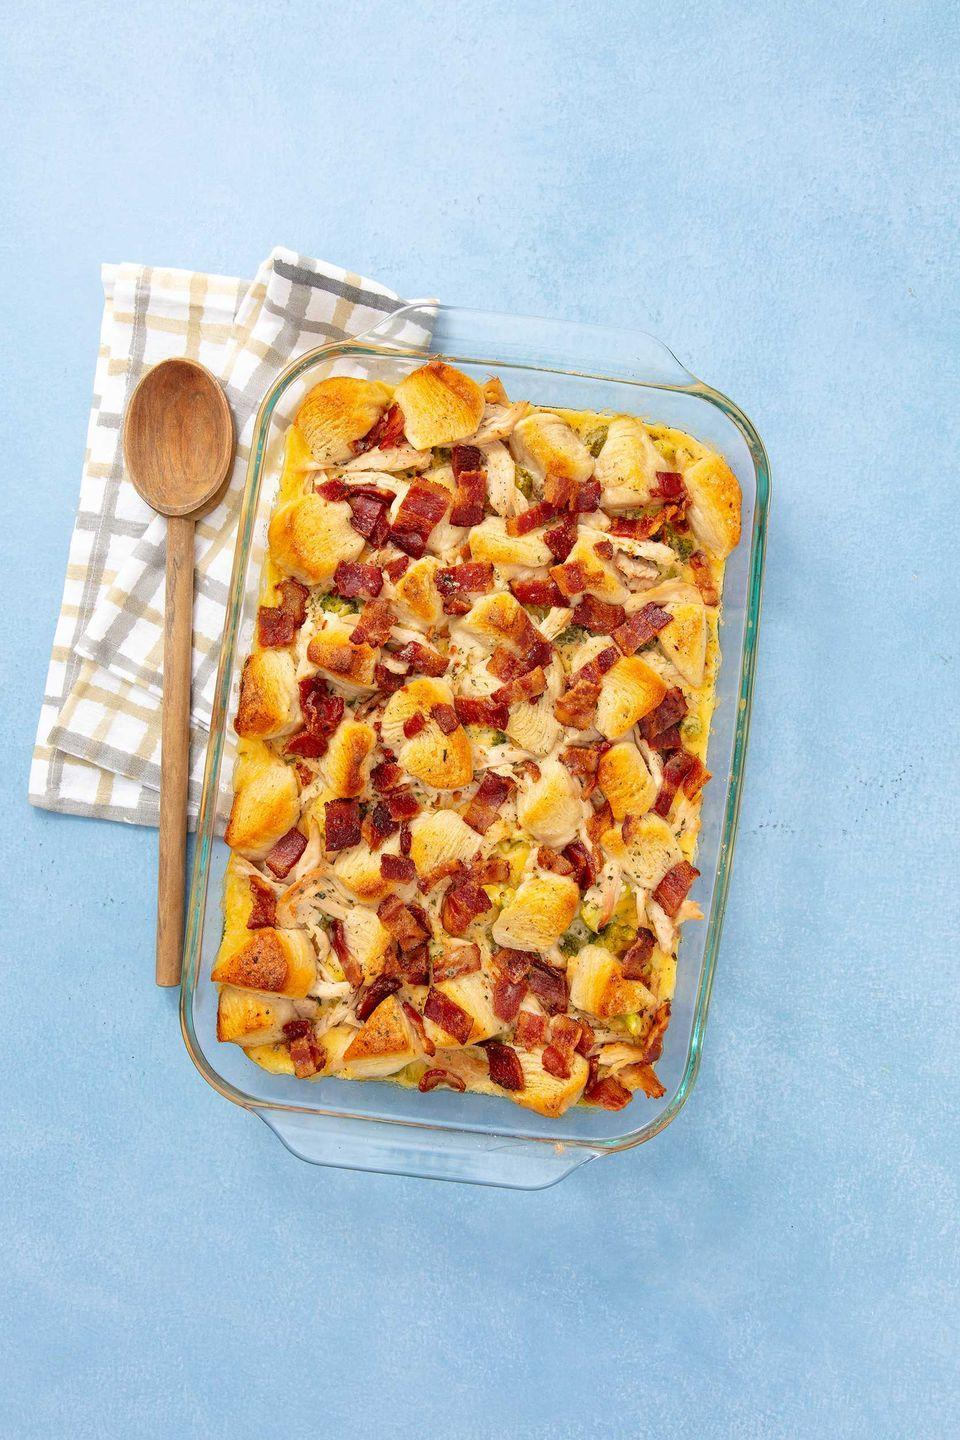 """<p>This might be the best way to use canned biscuits</p><p>.Get the recipe from <a href=""""https://www.delish.com/cooking/recipe-ideas/recipes/a58110/chicken-bacon-ranch-bubble-up-recipe/"""" rel=""""nofollow noopener"""" target=""""_blank"""" data-ylk=""""slk:Delish"""" class=""""link rapid-noclick-resp"""">Delish</a>.</p>"""